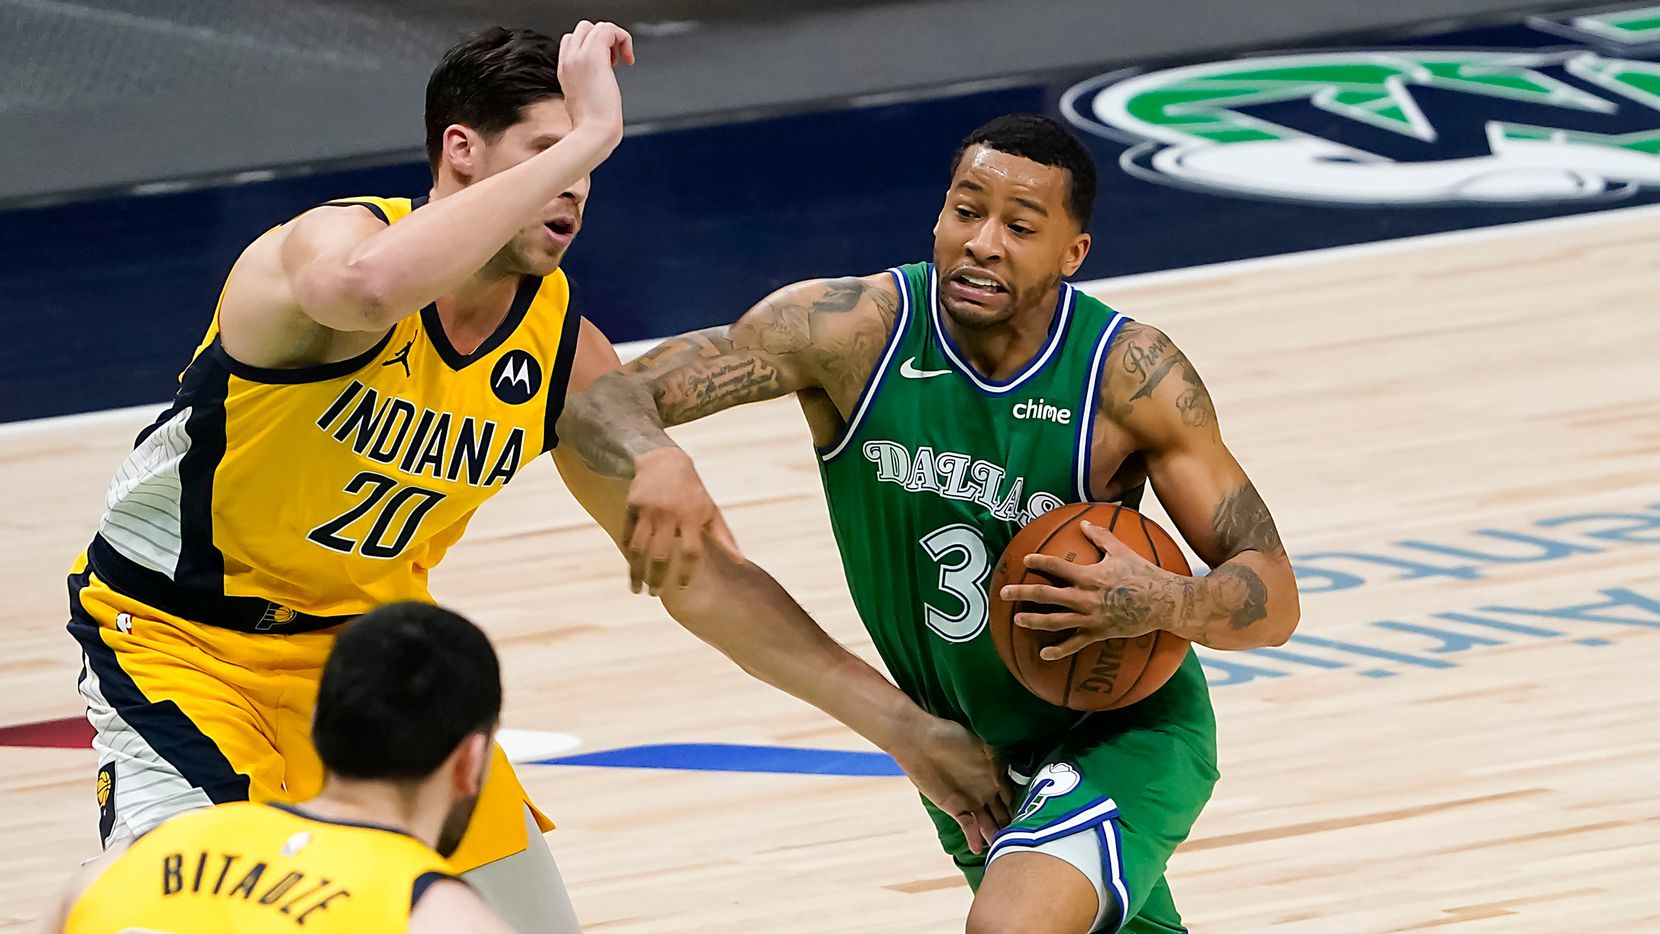 Dallas Mavericks guard Trey Burke (3) drives to the basket against Indiana Pacers forward Doug McDermott (20) during the first half of an NBA basketball game at American Airlines Center on Friday, March 26, 2021, in Dallas. (Smiley N. Pool/The Dallas Morning News)